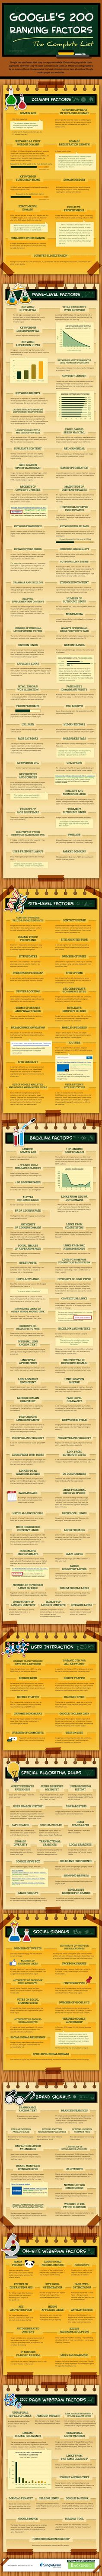 google-ranking-factors.jpg (800×20110)